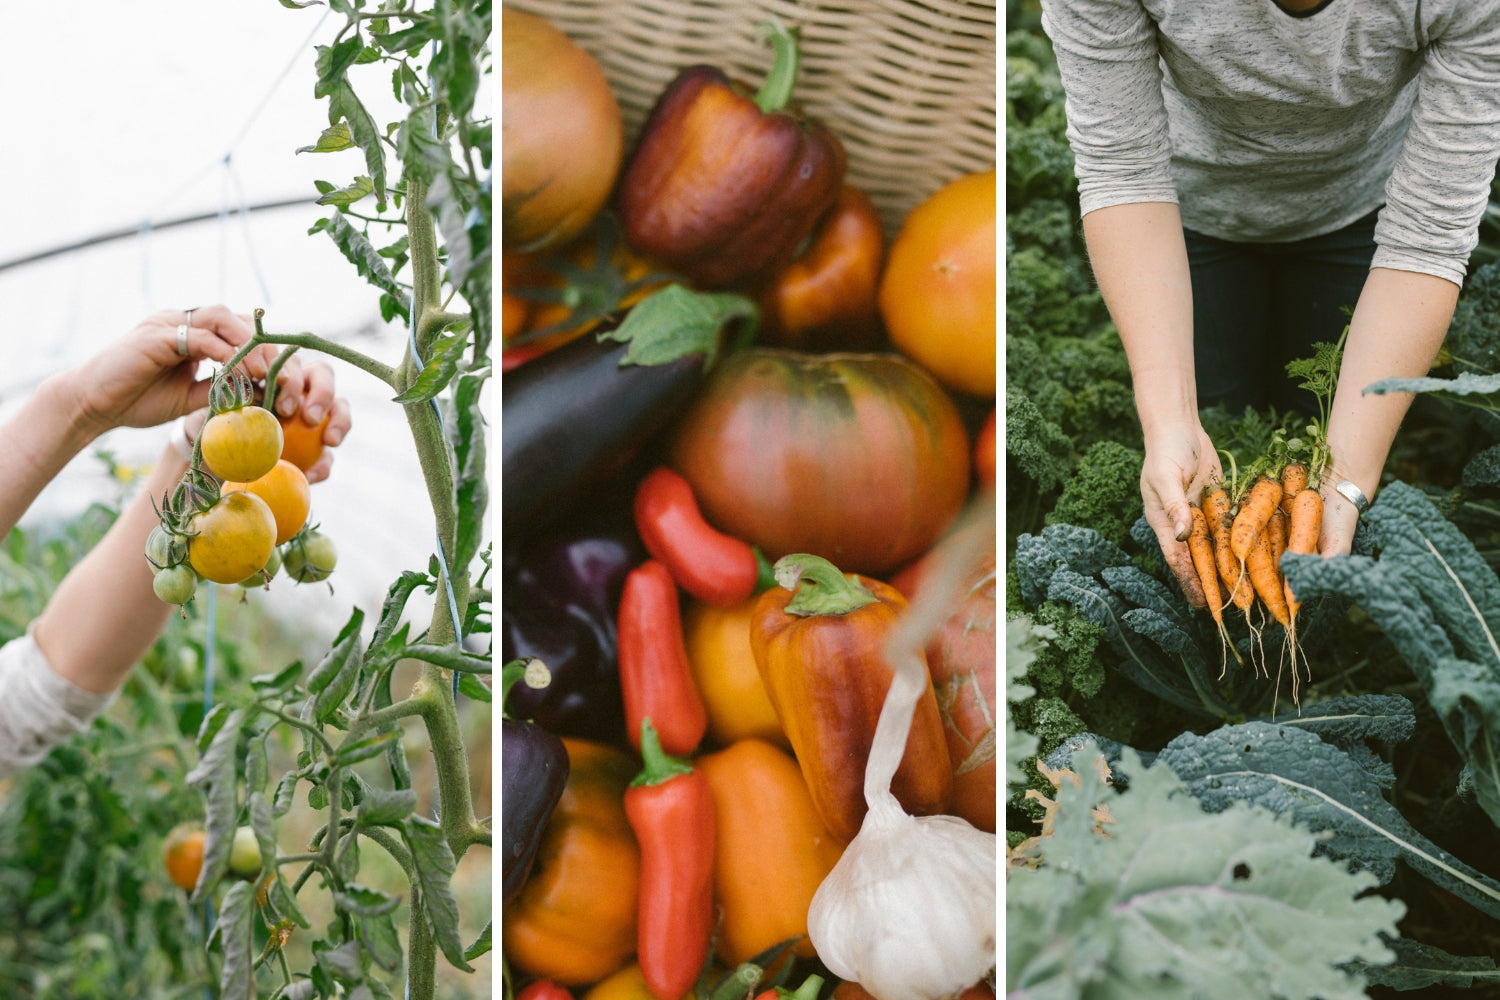 The best way to save freshly picked vegetables is in Abeego beeswax wrap, the choice of gardeners